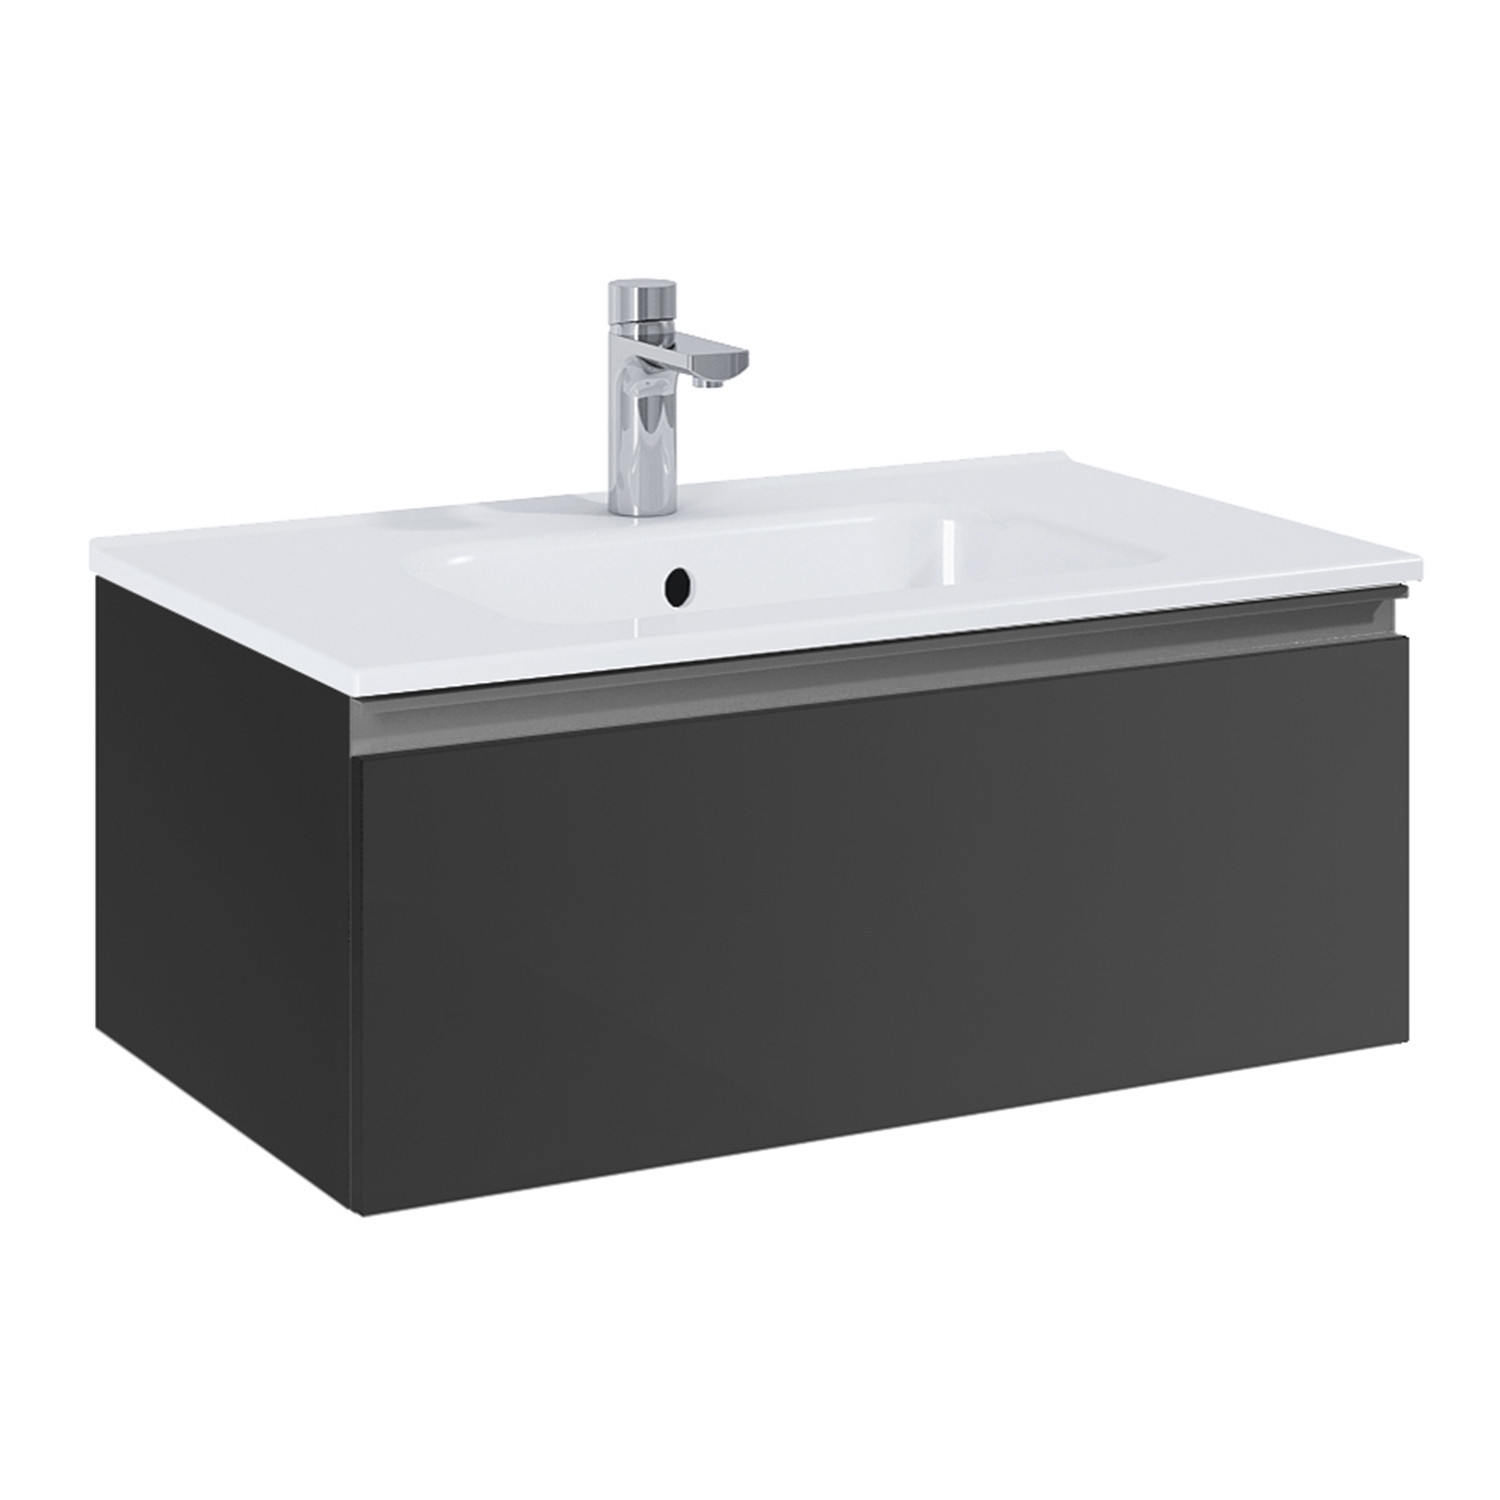 Royo VIDA // Wall-Hung Bathroom Vanity Cabinet + Sliding Drawer + ...